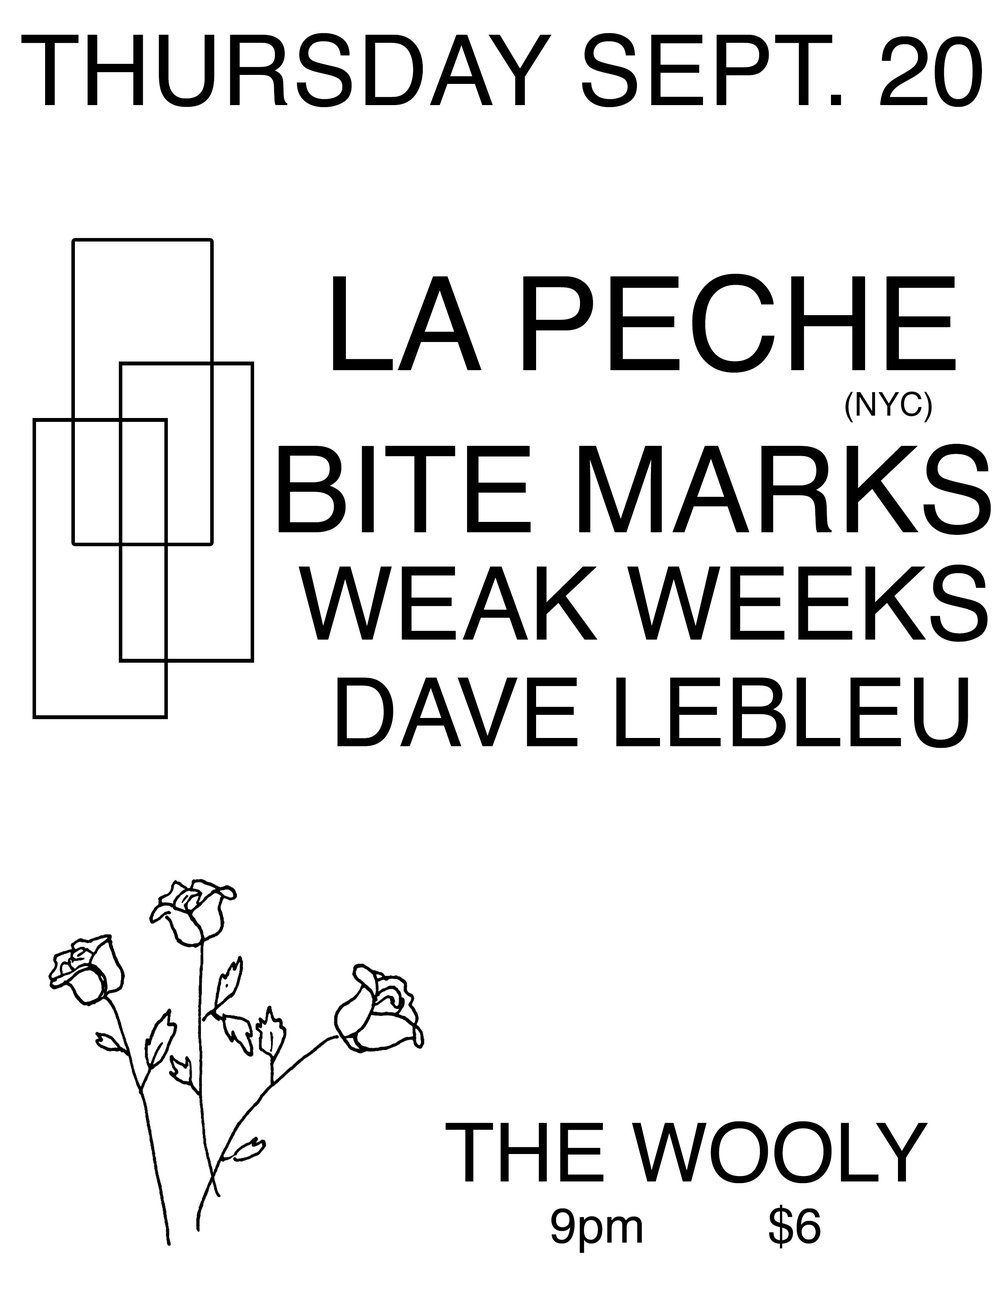 Thursday, Sept 20   LAPêCHE  | (NYC)   BiteMarks   Weak Weeks  Dave Lebleu   Doors open at 9pm / Show starts at 9:45 $6 at the door